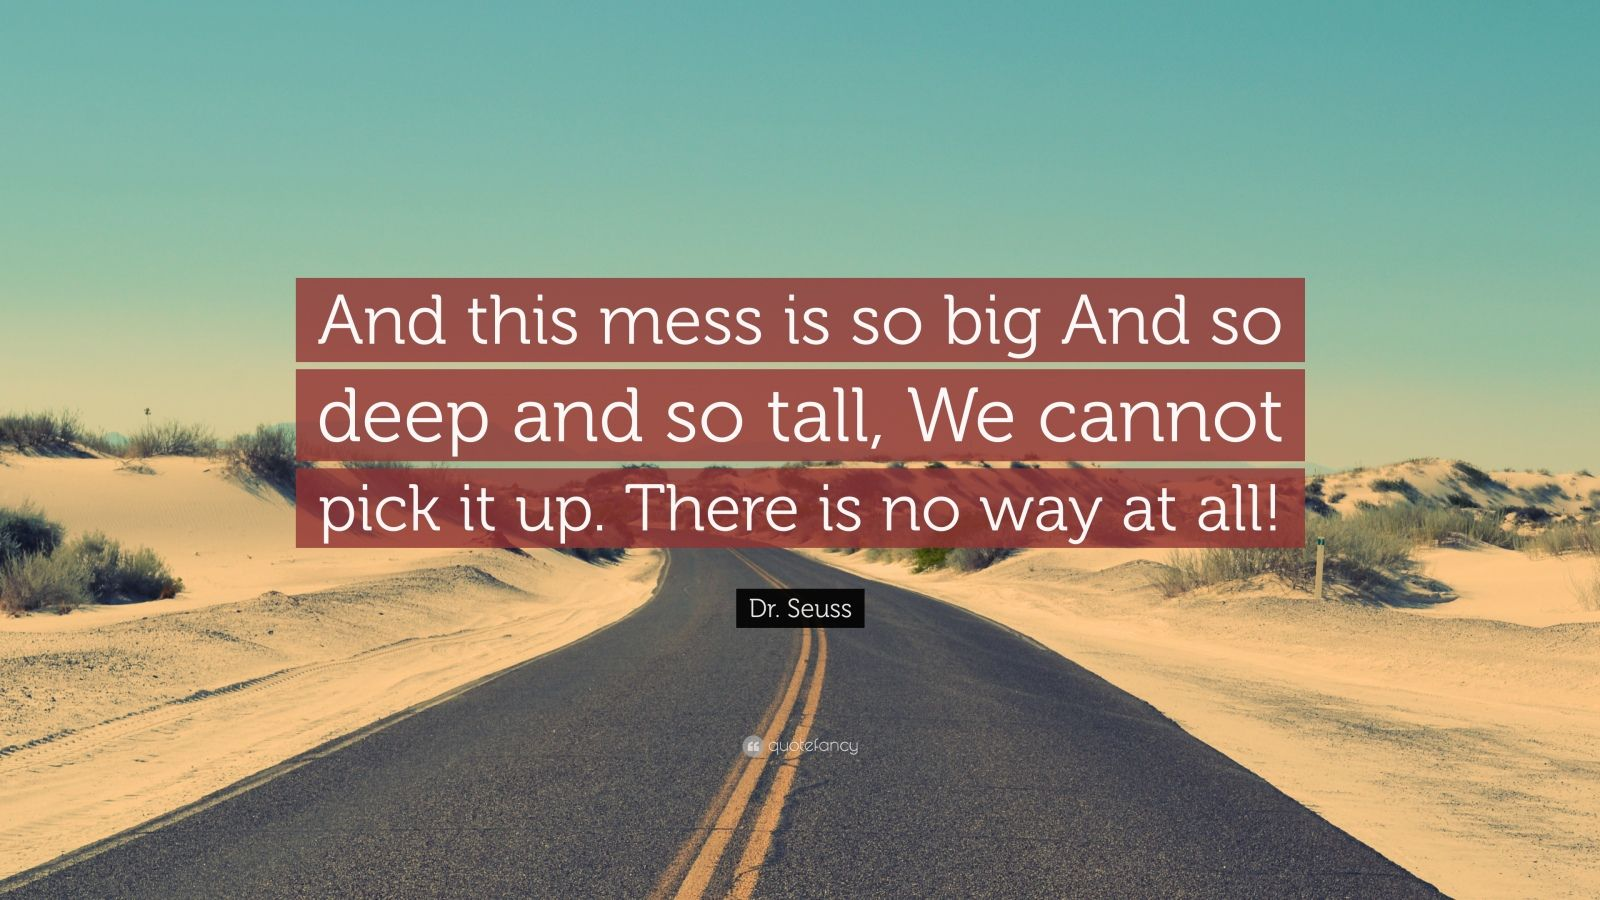 """Dr. Seuss Quote: """"And this mess is so big And so deep and so tall, We cannot pick it up. There is no way at all!"""""""